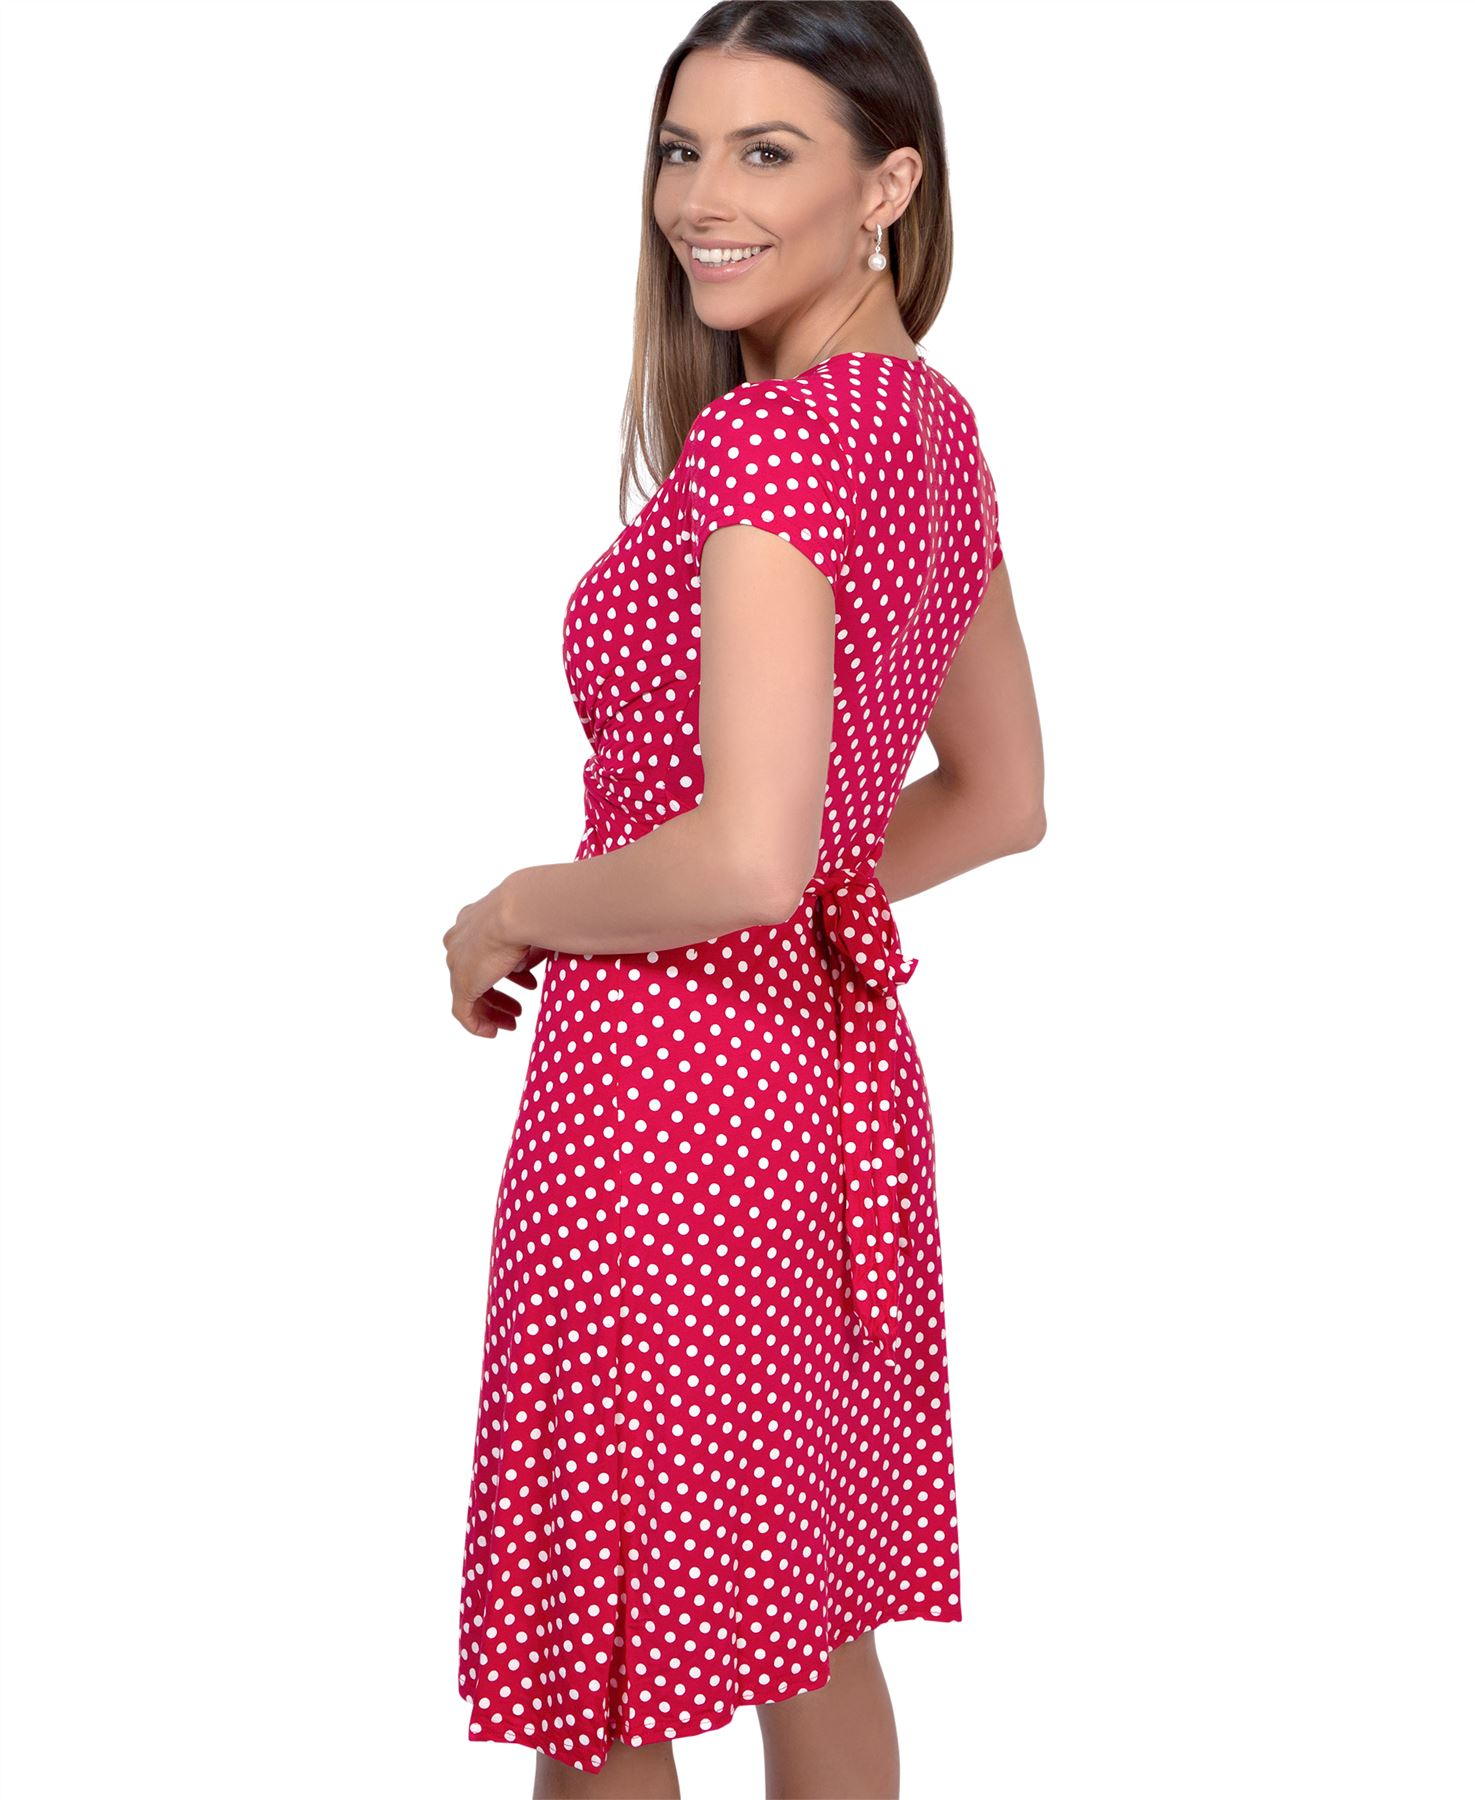 Womens-Polka-Dot-Dress-Pleated-Skirt-Wrap-Front-Mini-V-Neck-Top-Swing thumbnail 37